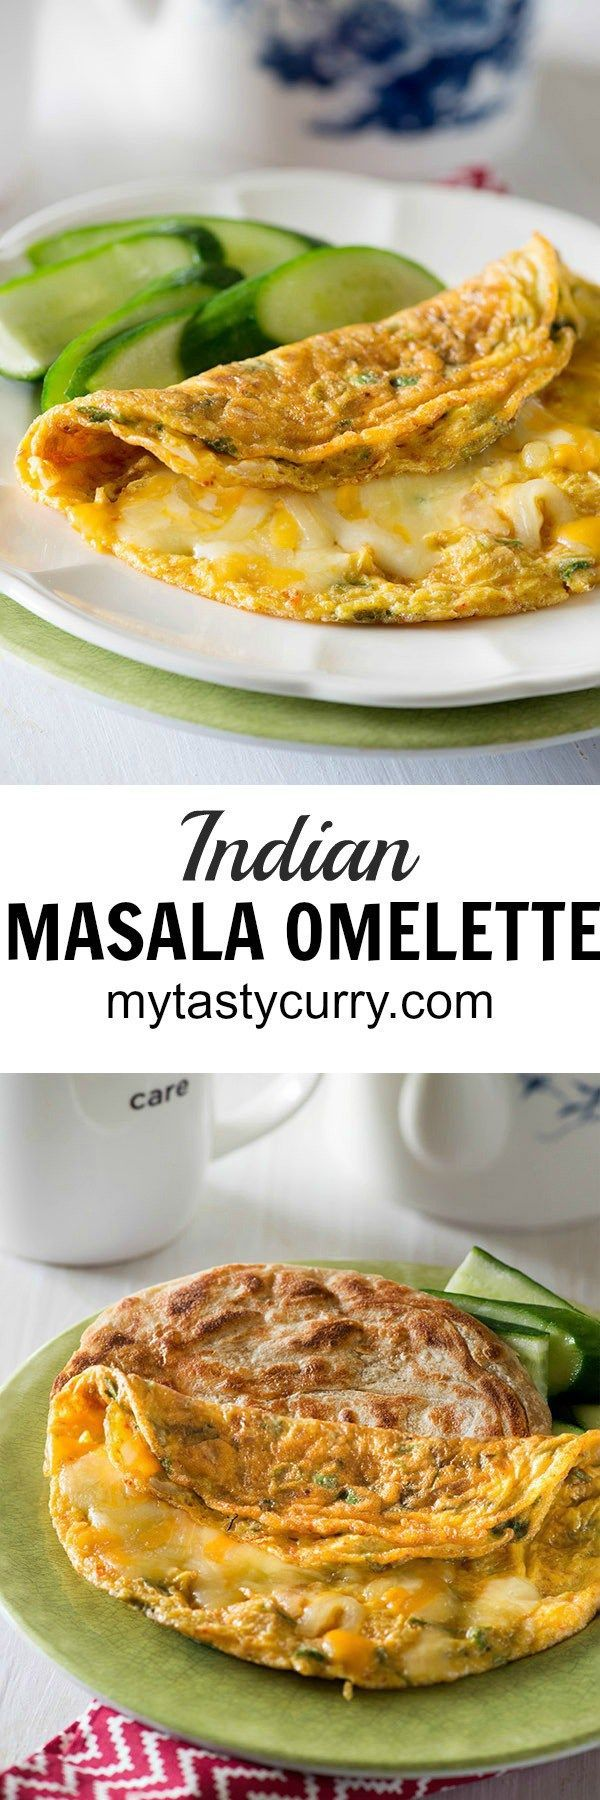 Indian Masala omelette recipe perfect for breakfast, lunch or even dinner. Eat the masala omelete on its own, or add vegetables, spices, and cheese of your choice to make it even better. Masala omelette is the easiest meal on go for me and mostly serve it up with a side of veggies either stirred or simple green salad. WhenI am feeling more indulgent, A crispy paratha along with it serves the purpose alright.